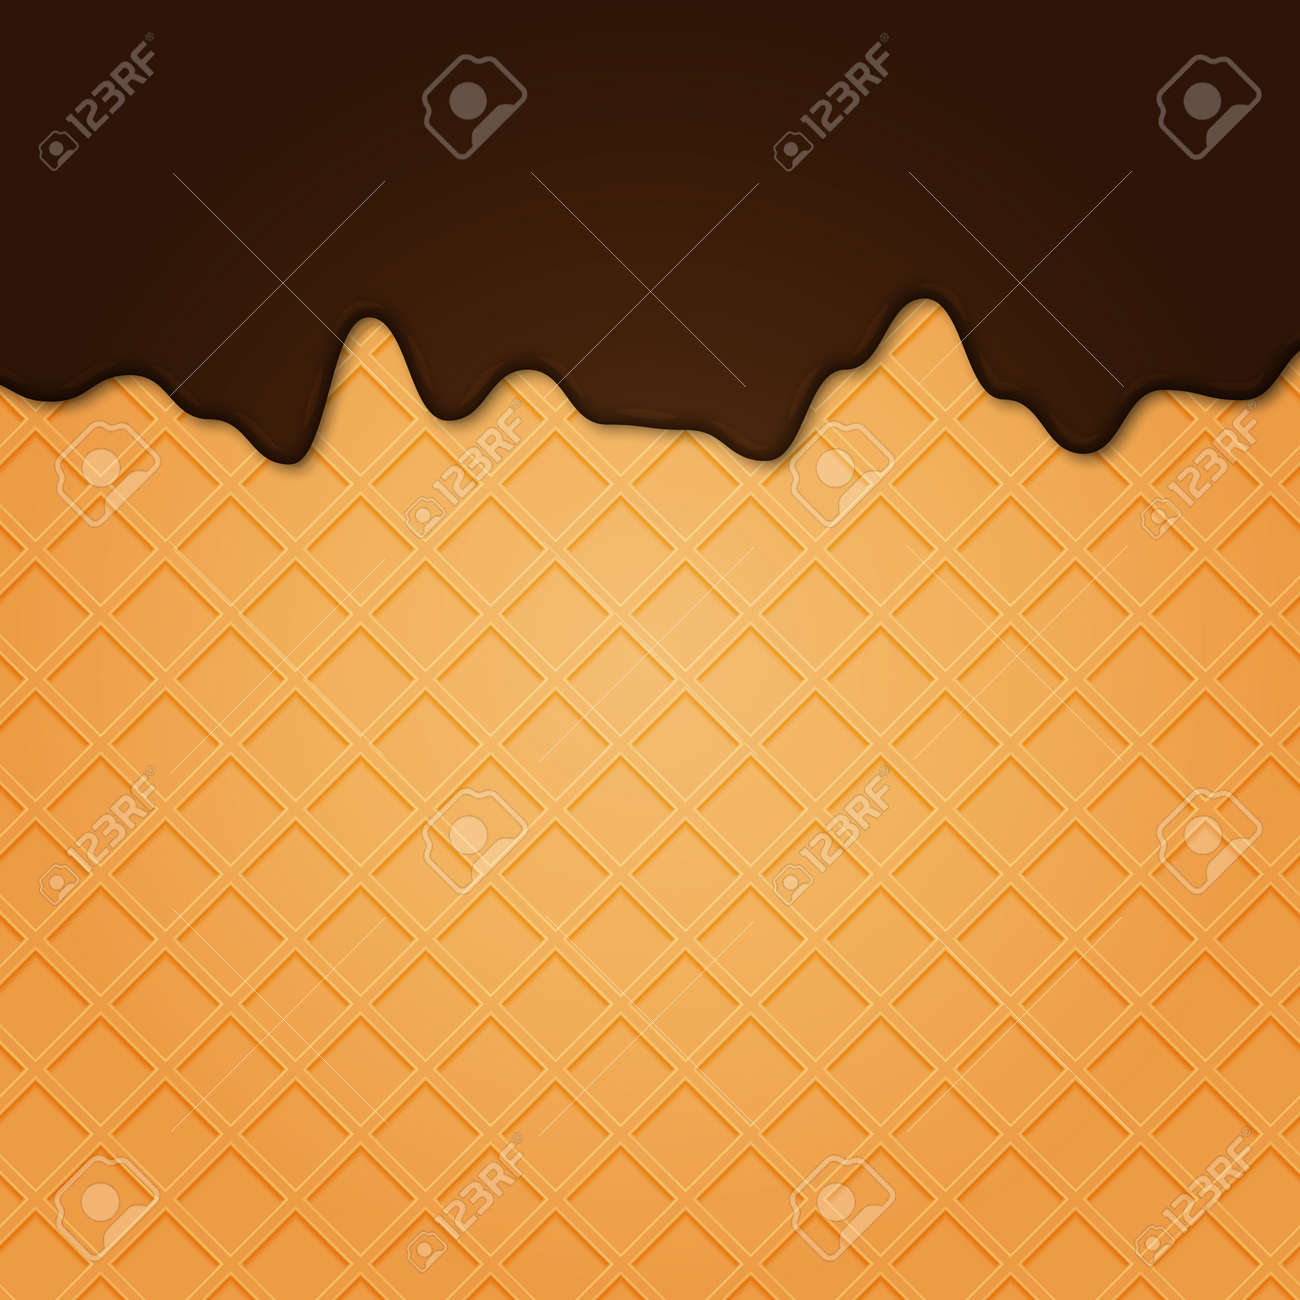 Waffle with liquid glaze. Vector background with waffle texture and chocolate cream border .. - 153863323